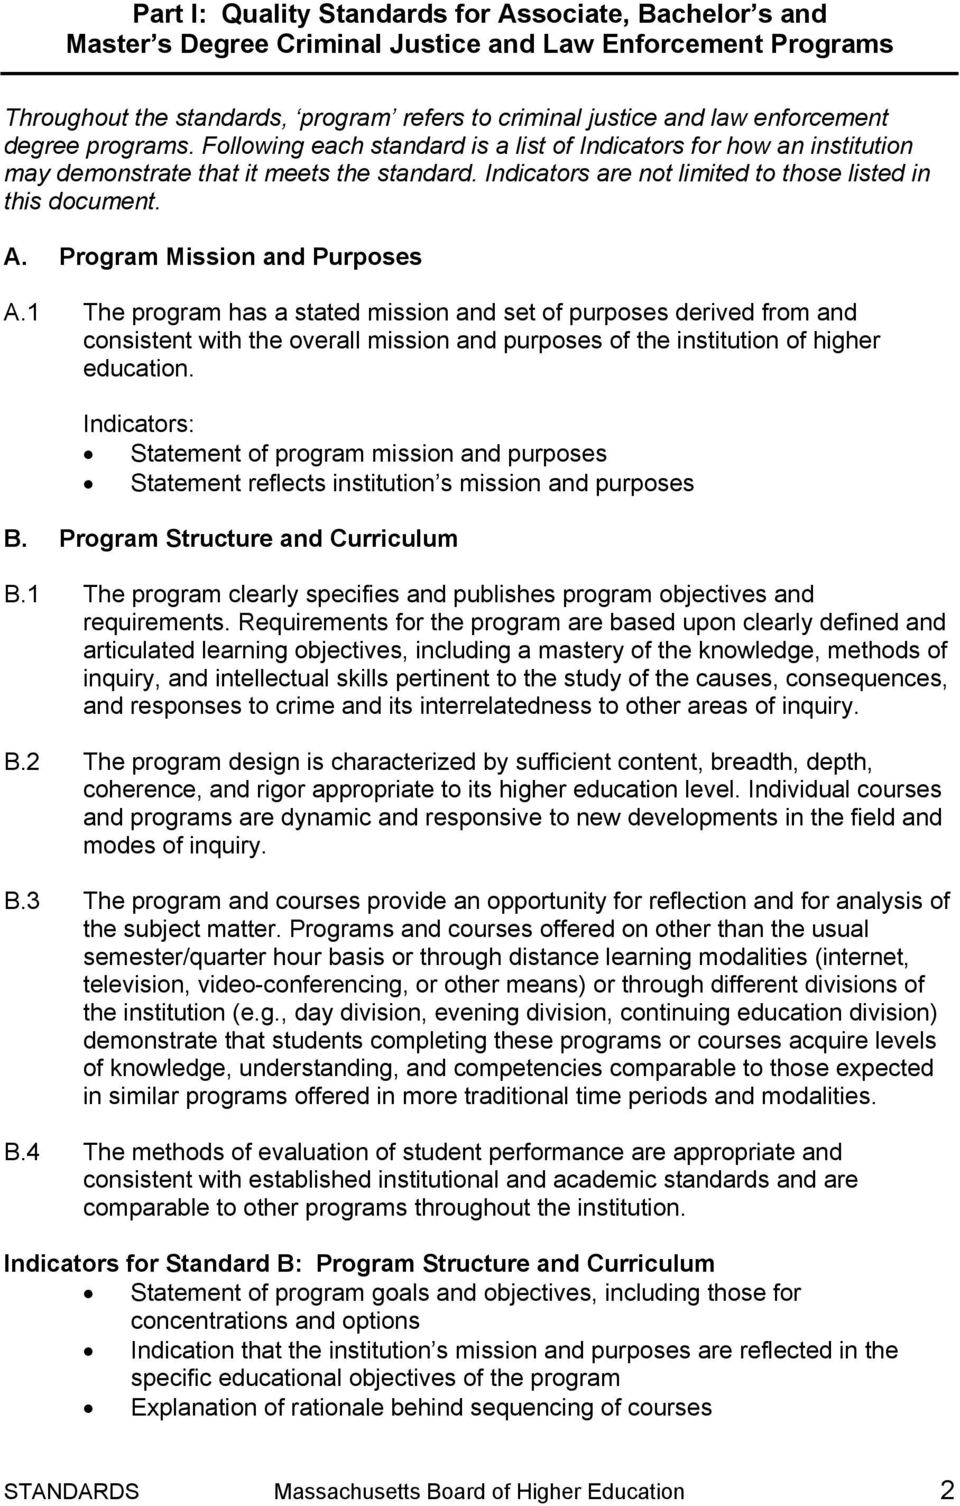 Program Mission and Purposes A.1 The program has a stated mission and set of purposes derived from and consistent with the overall mission and purposes of the institution of higher education.